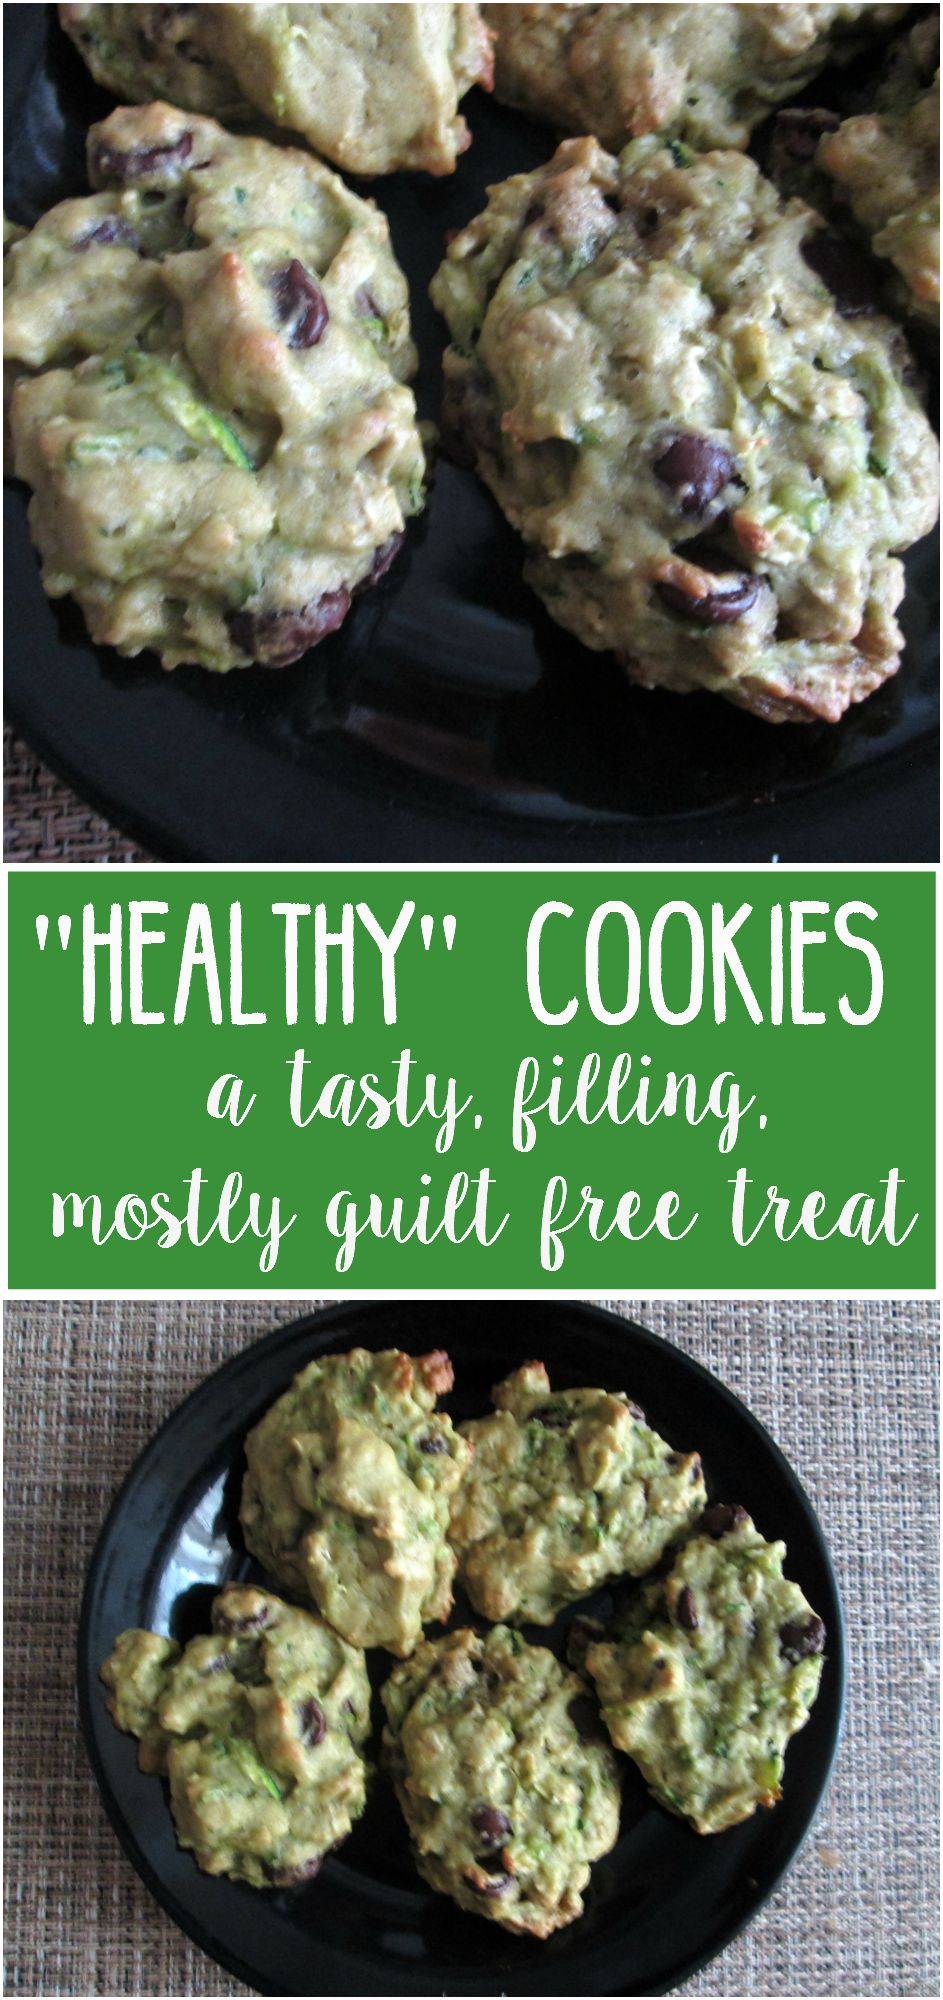 Is it really possible for a cookie to be healthy and taste good? I absolutely think so! Try out this healthy cookies recipe featuring avocado and zucchini.